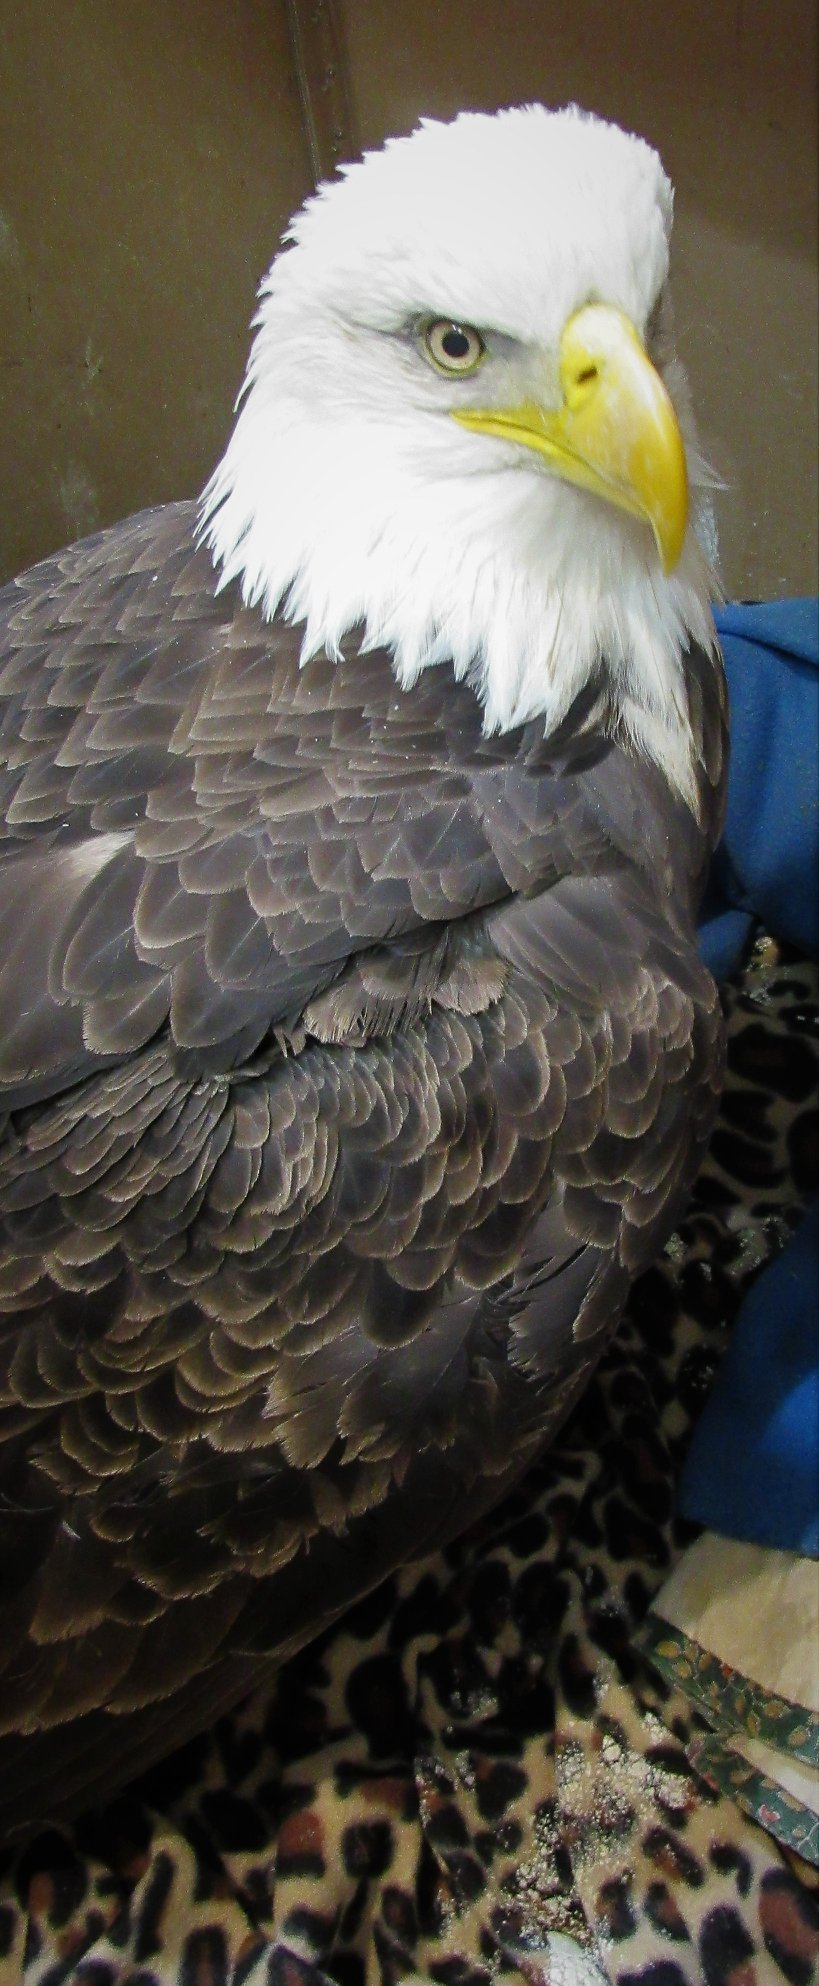 Keshena bald eagle standing and no longer suffering from seizures.